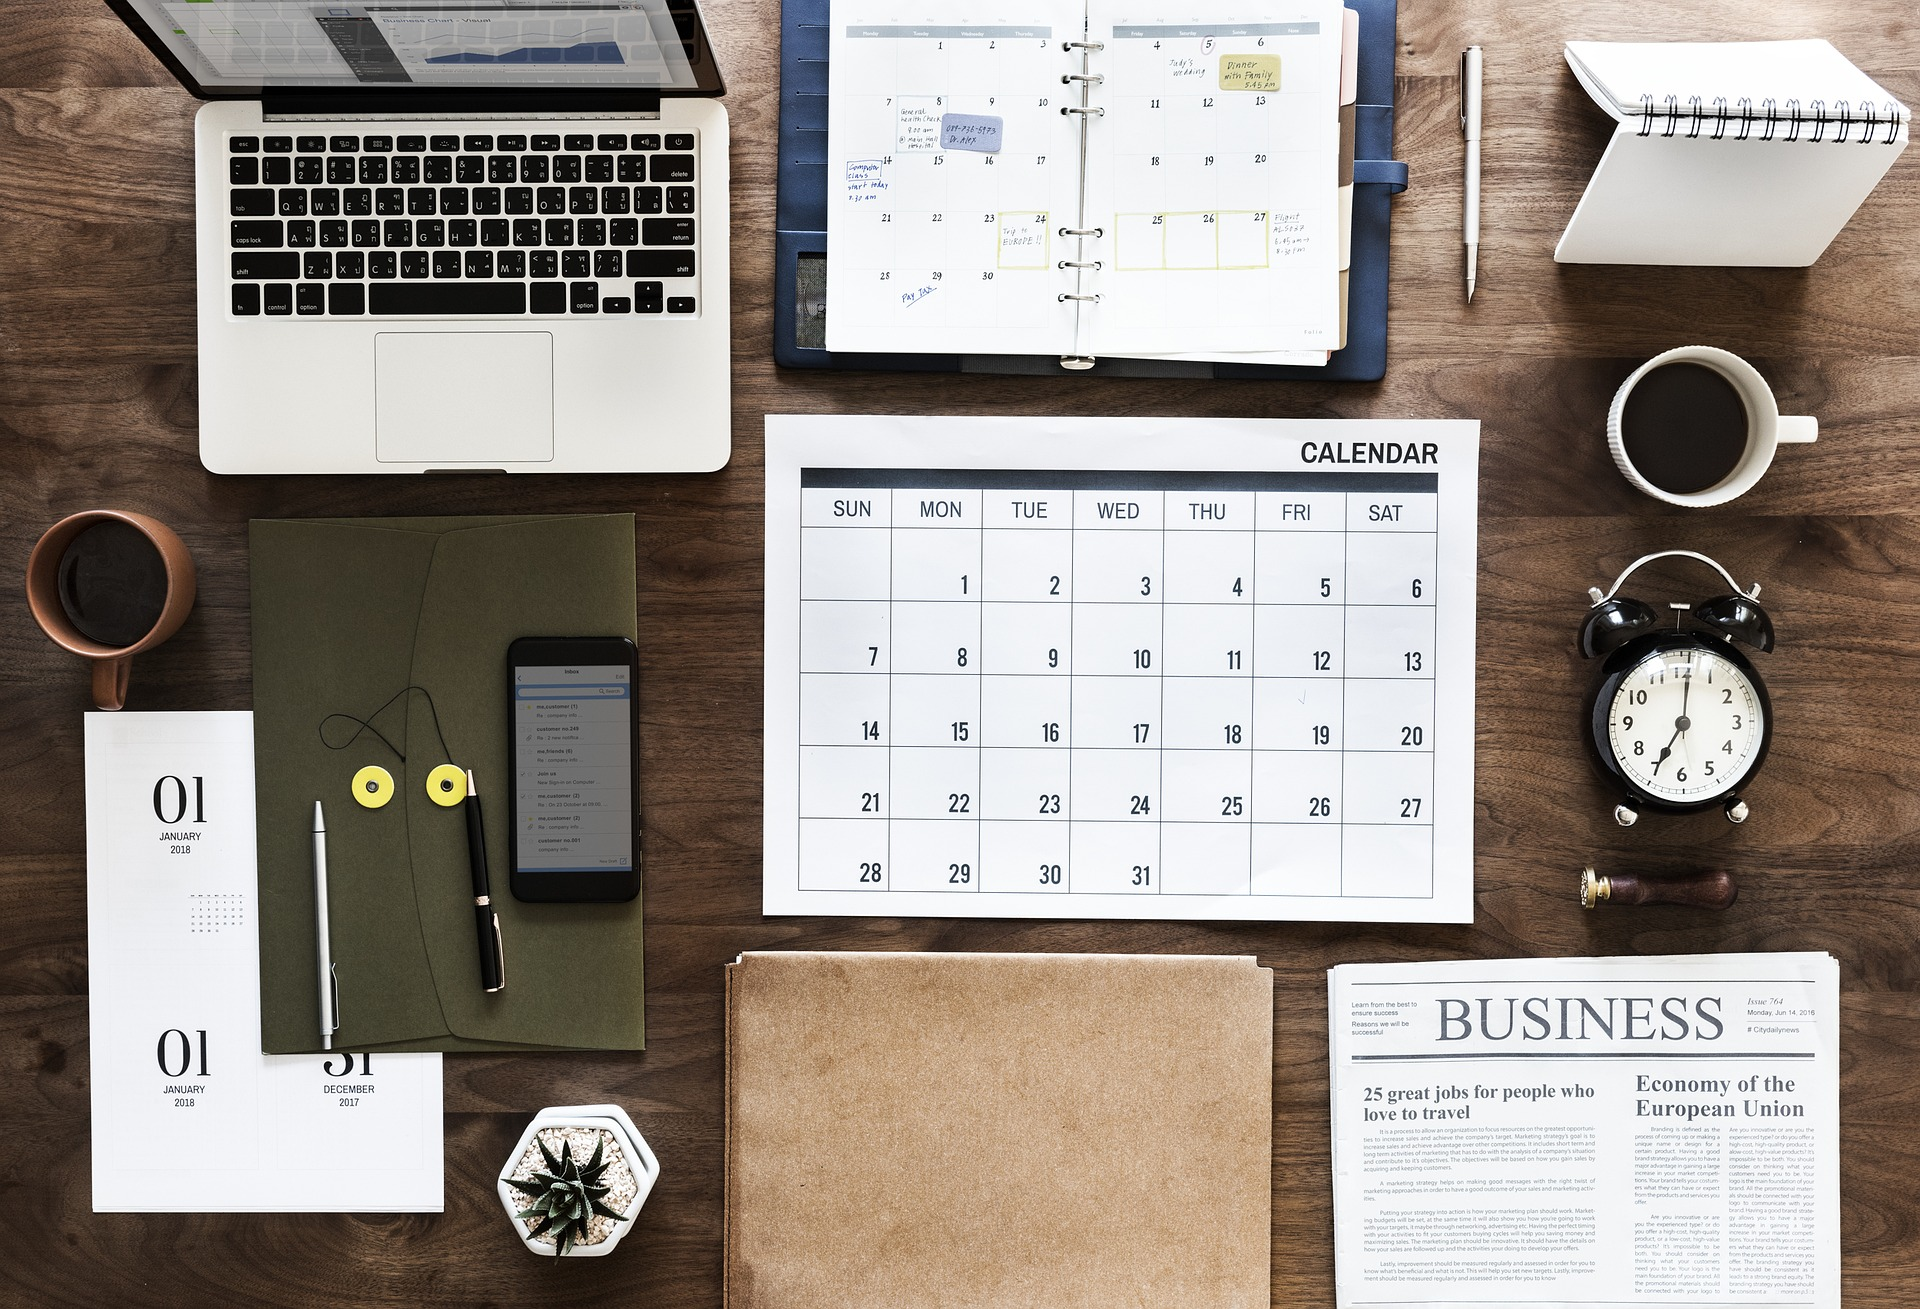 starting a business - are you asking the right questions before starting your own business? what questions to ask before starting a business